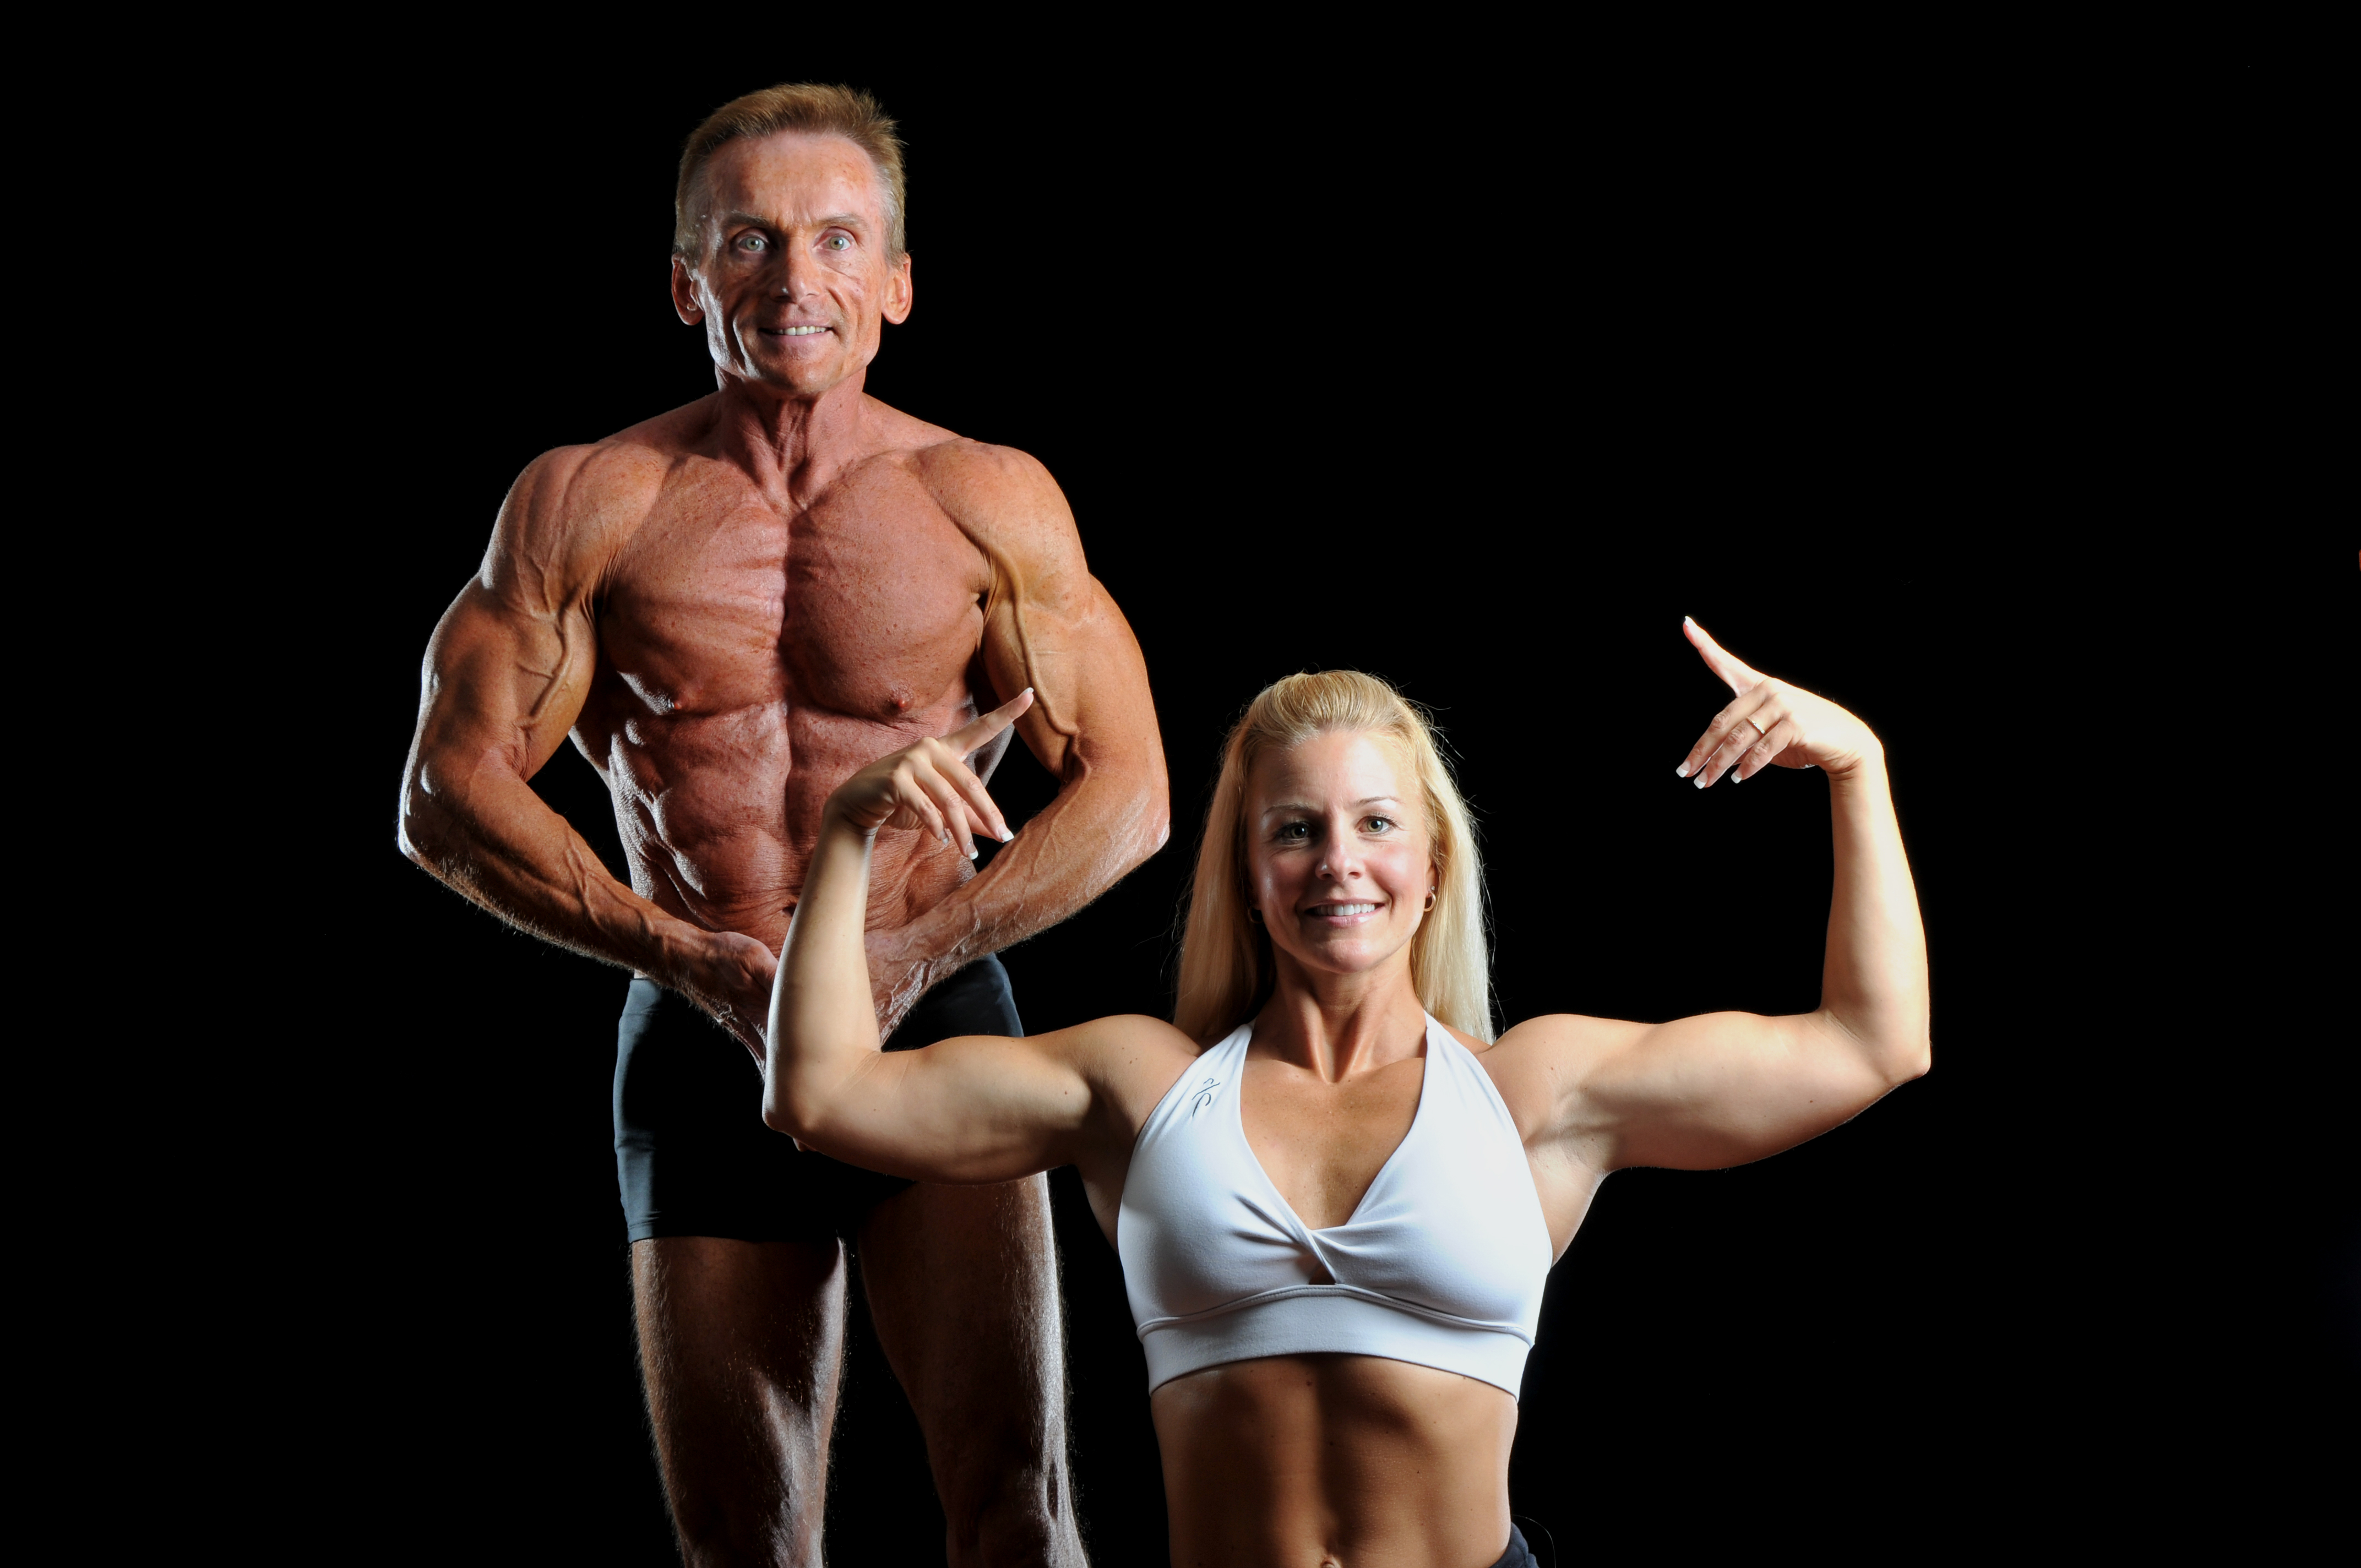 Rival Any Competitive Model or Bodybuilder Half Their Ages